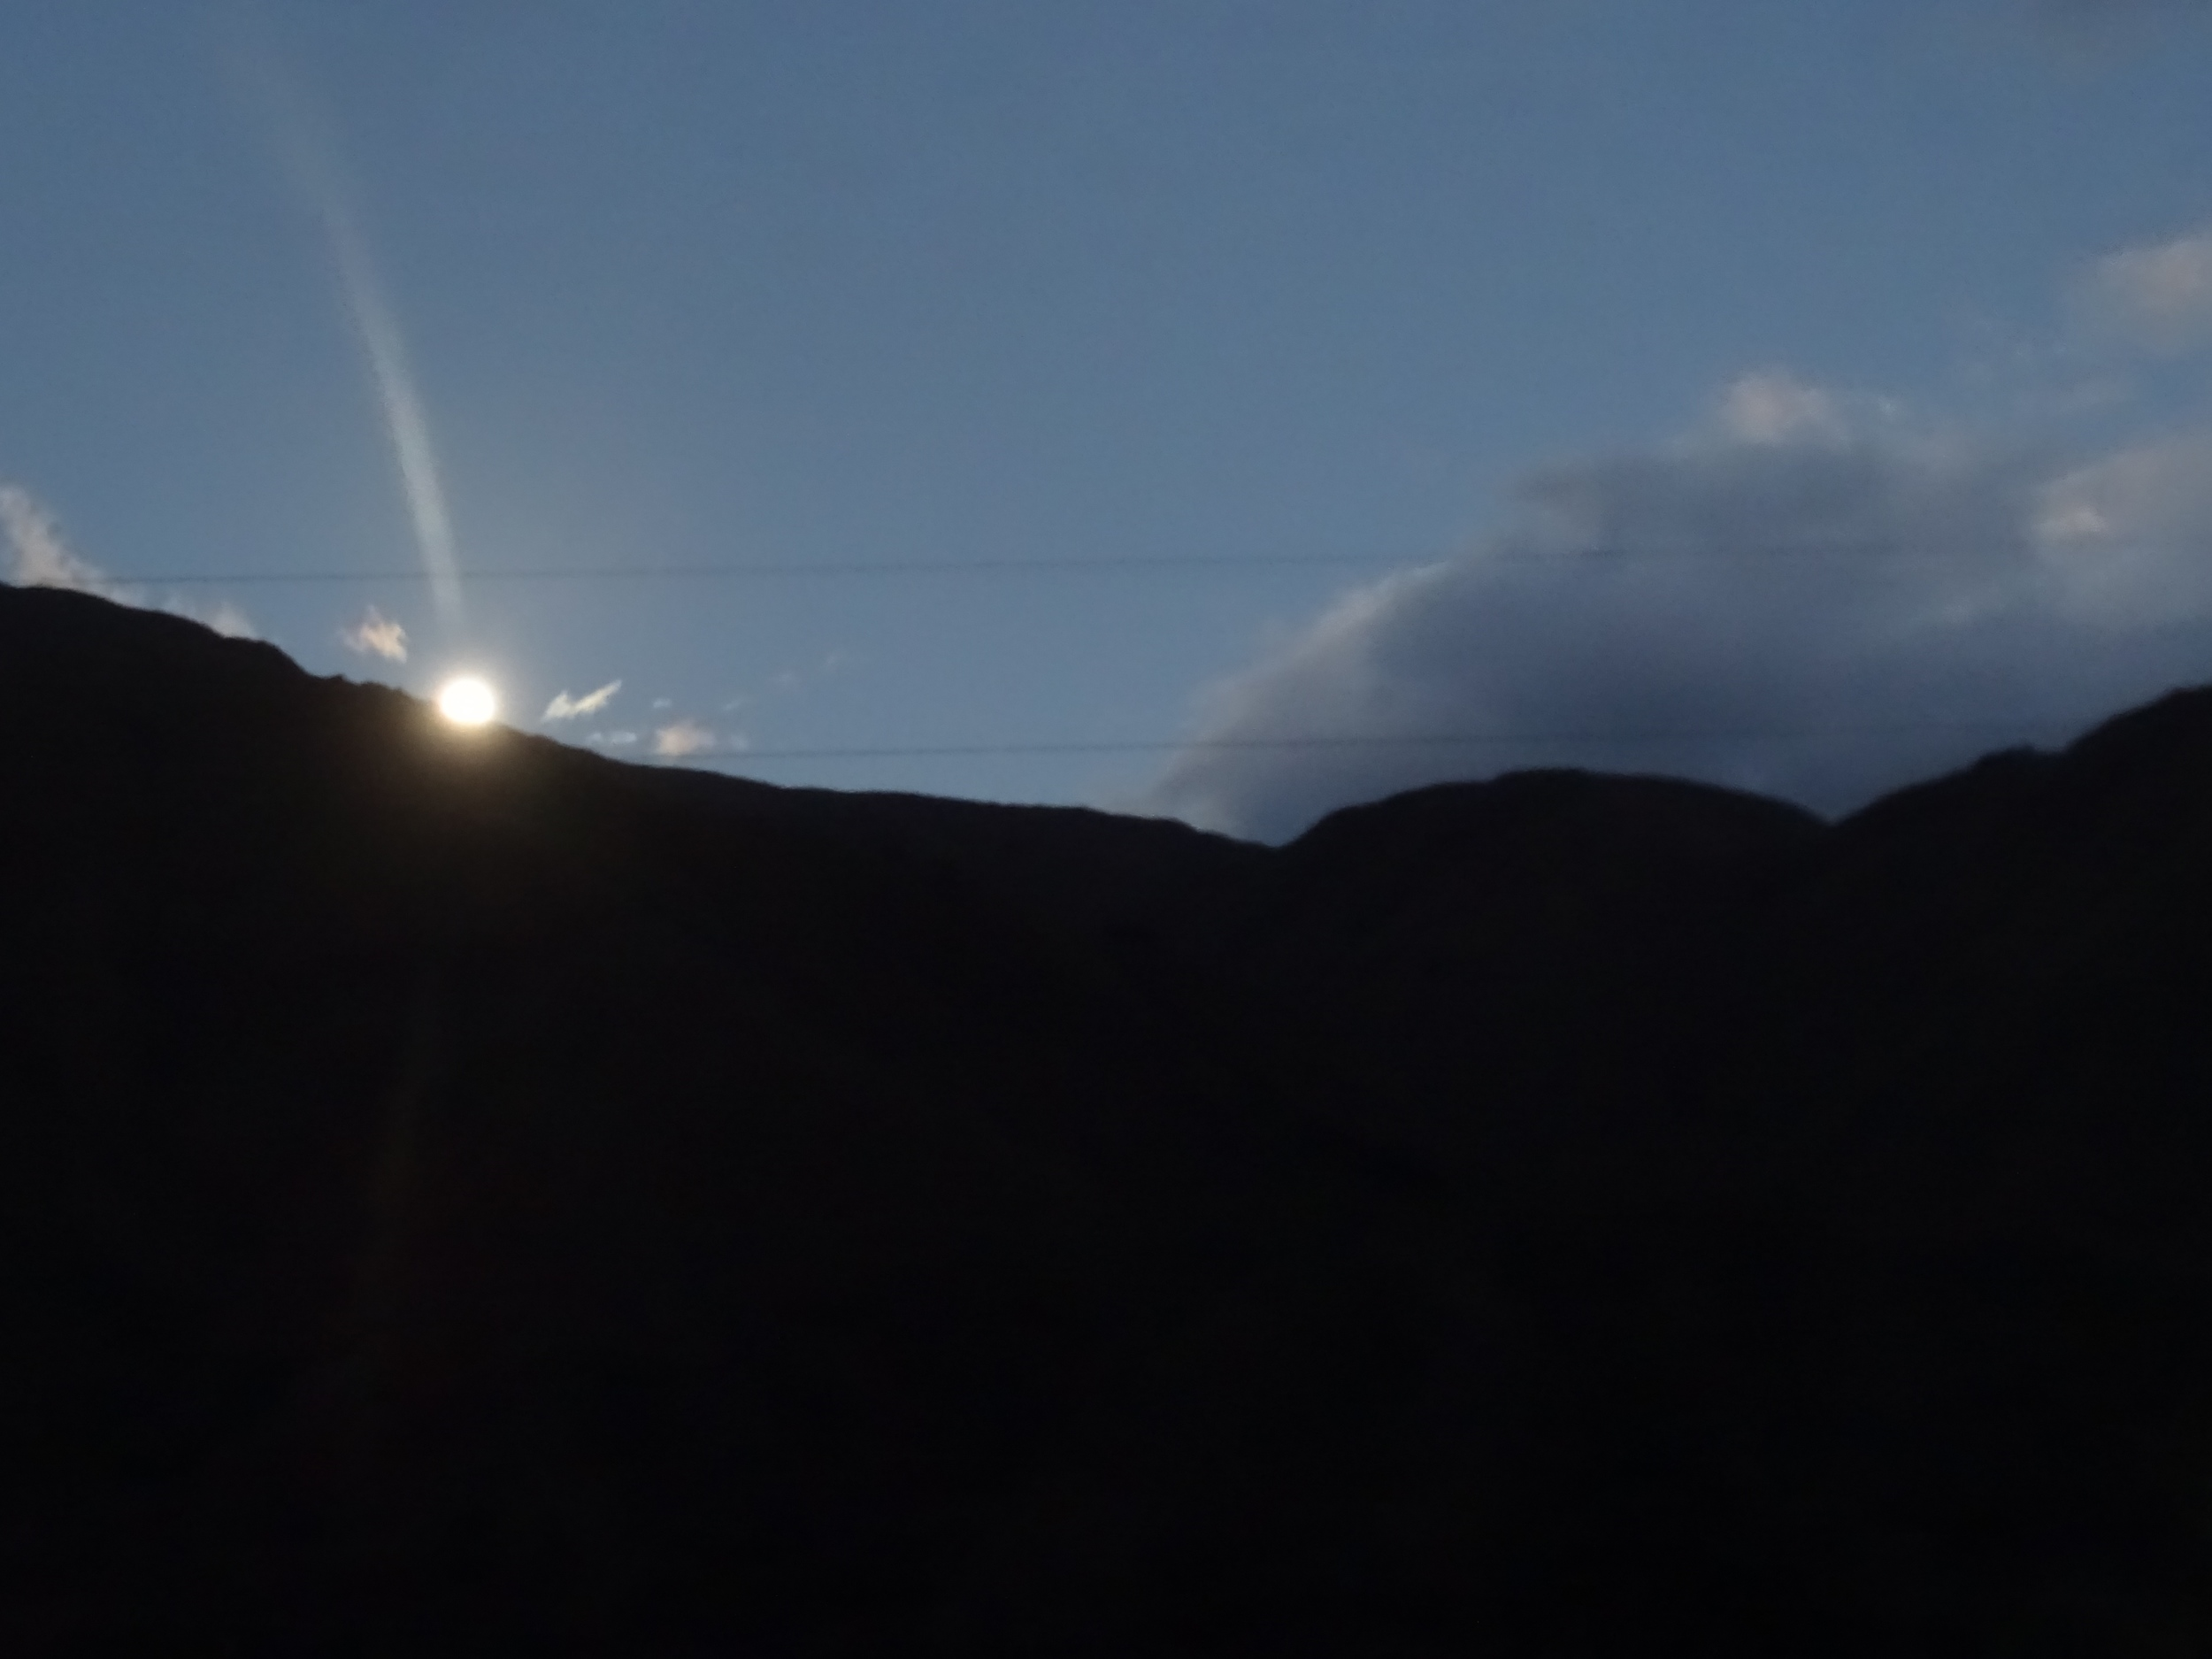 As I was waking up, the full moon was disappearing.